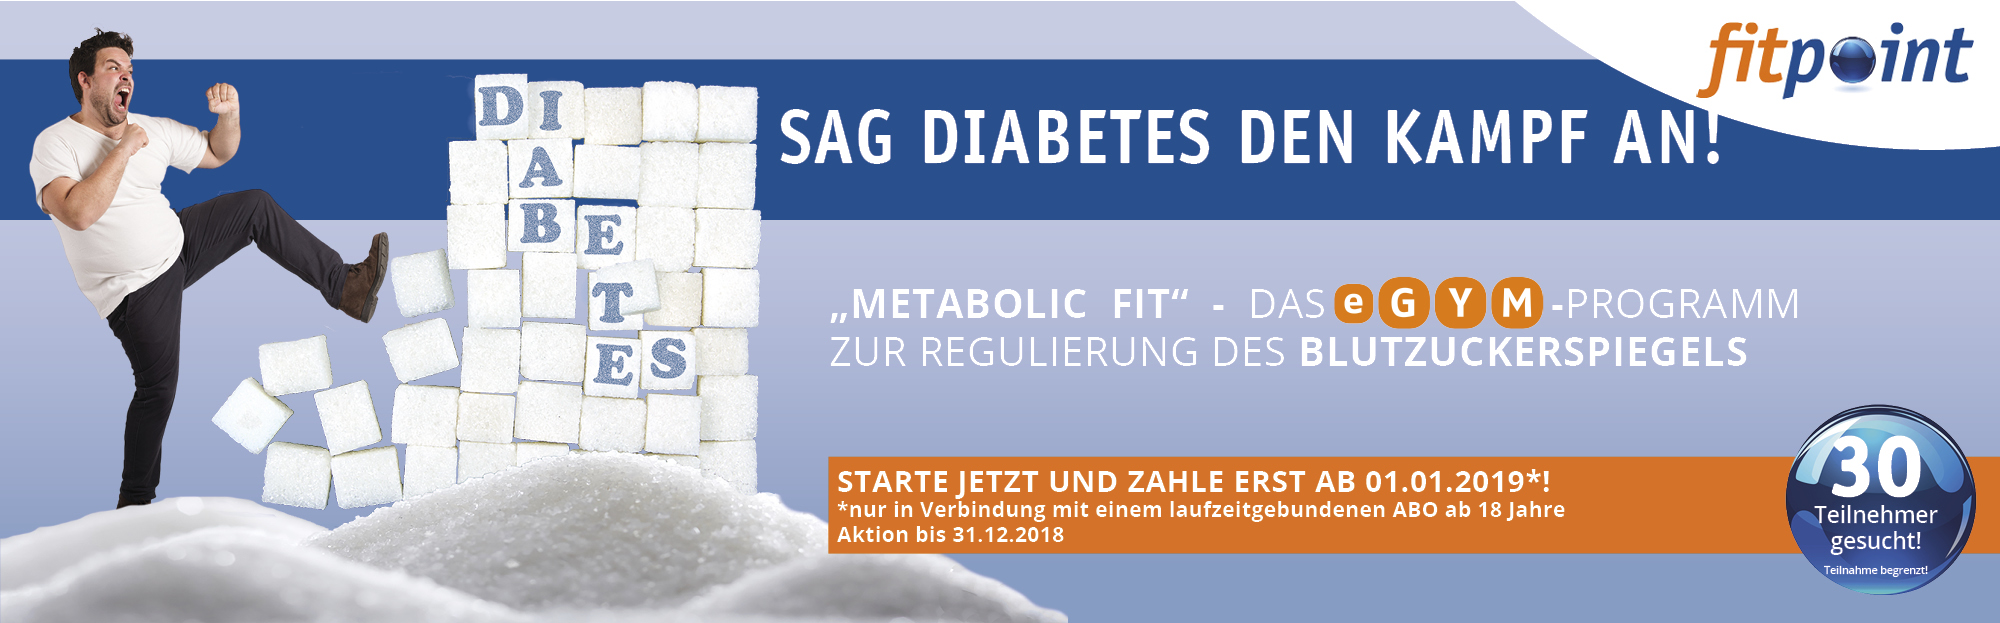 Diabetes Aktion Background